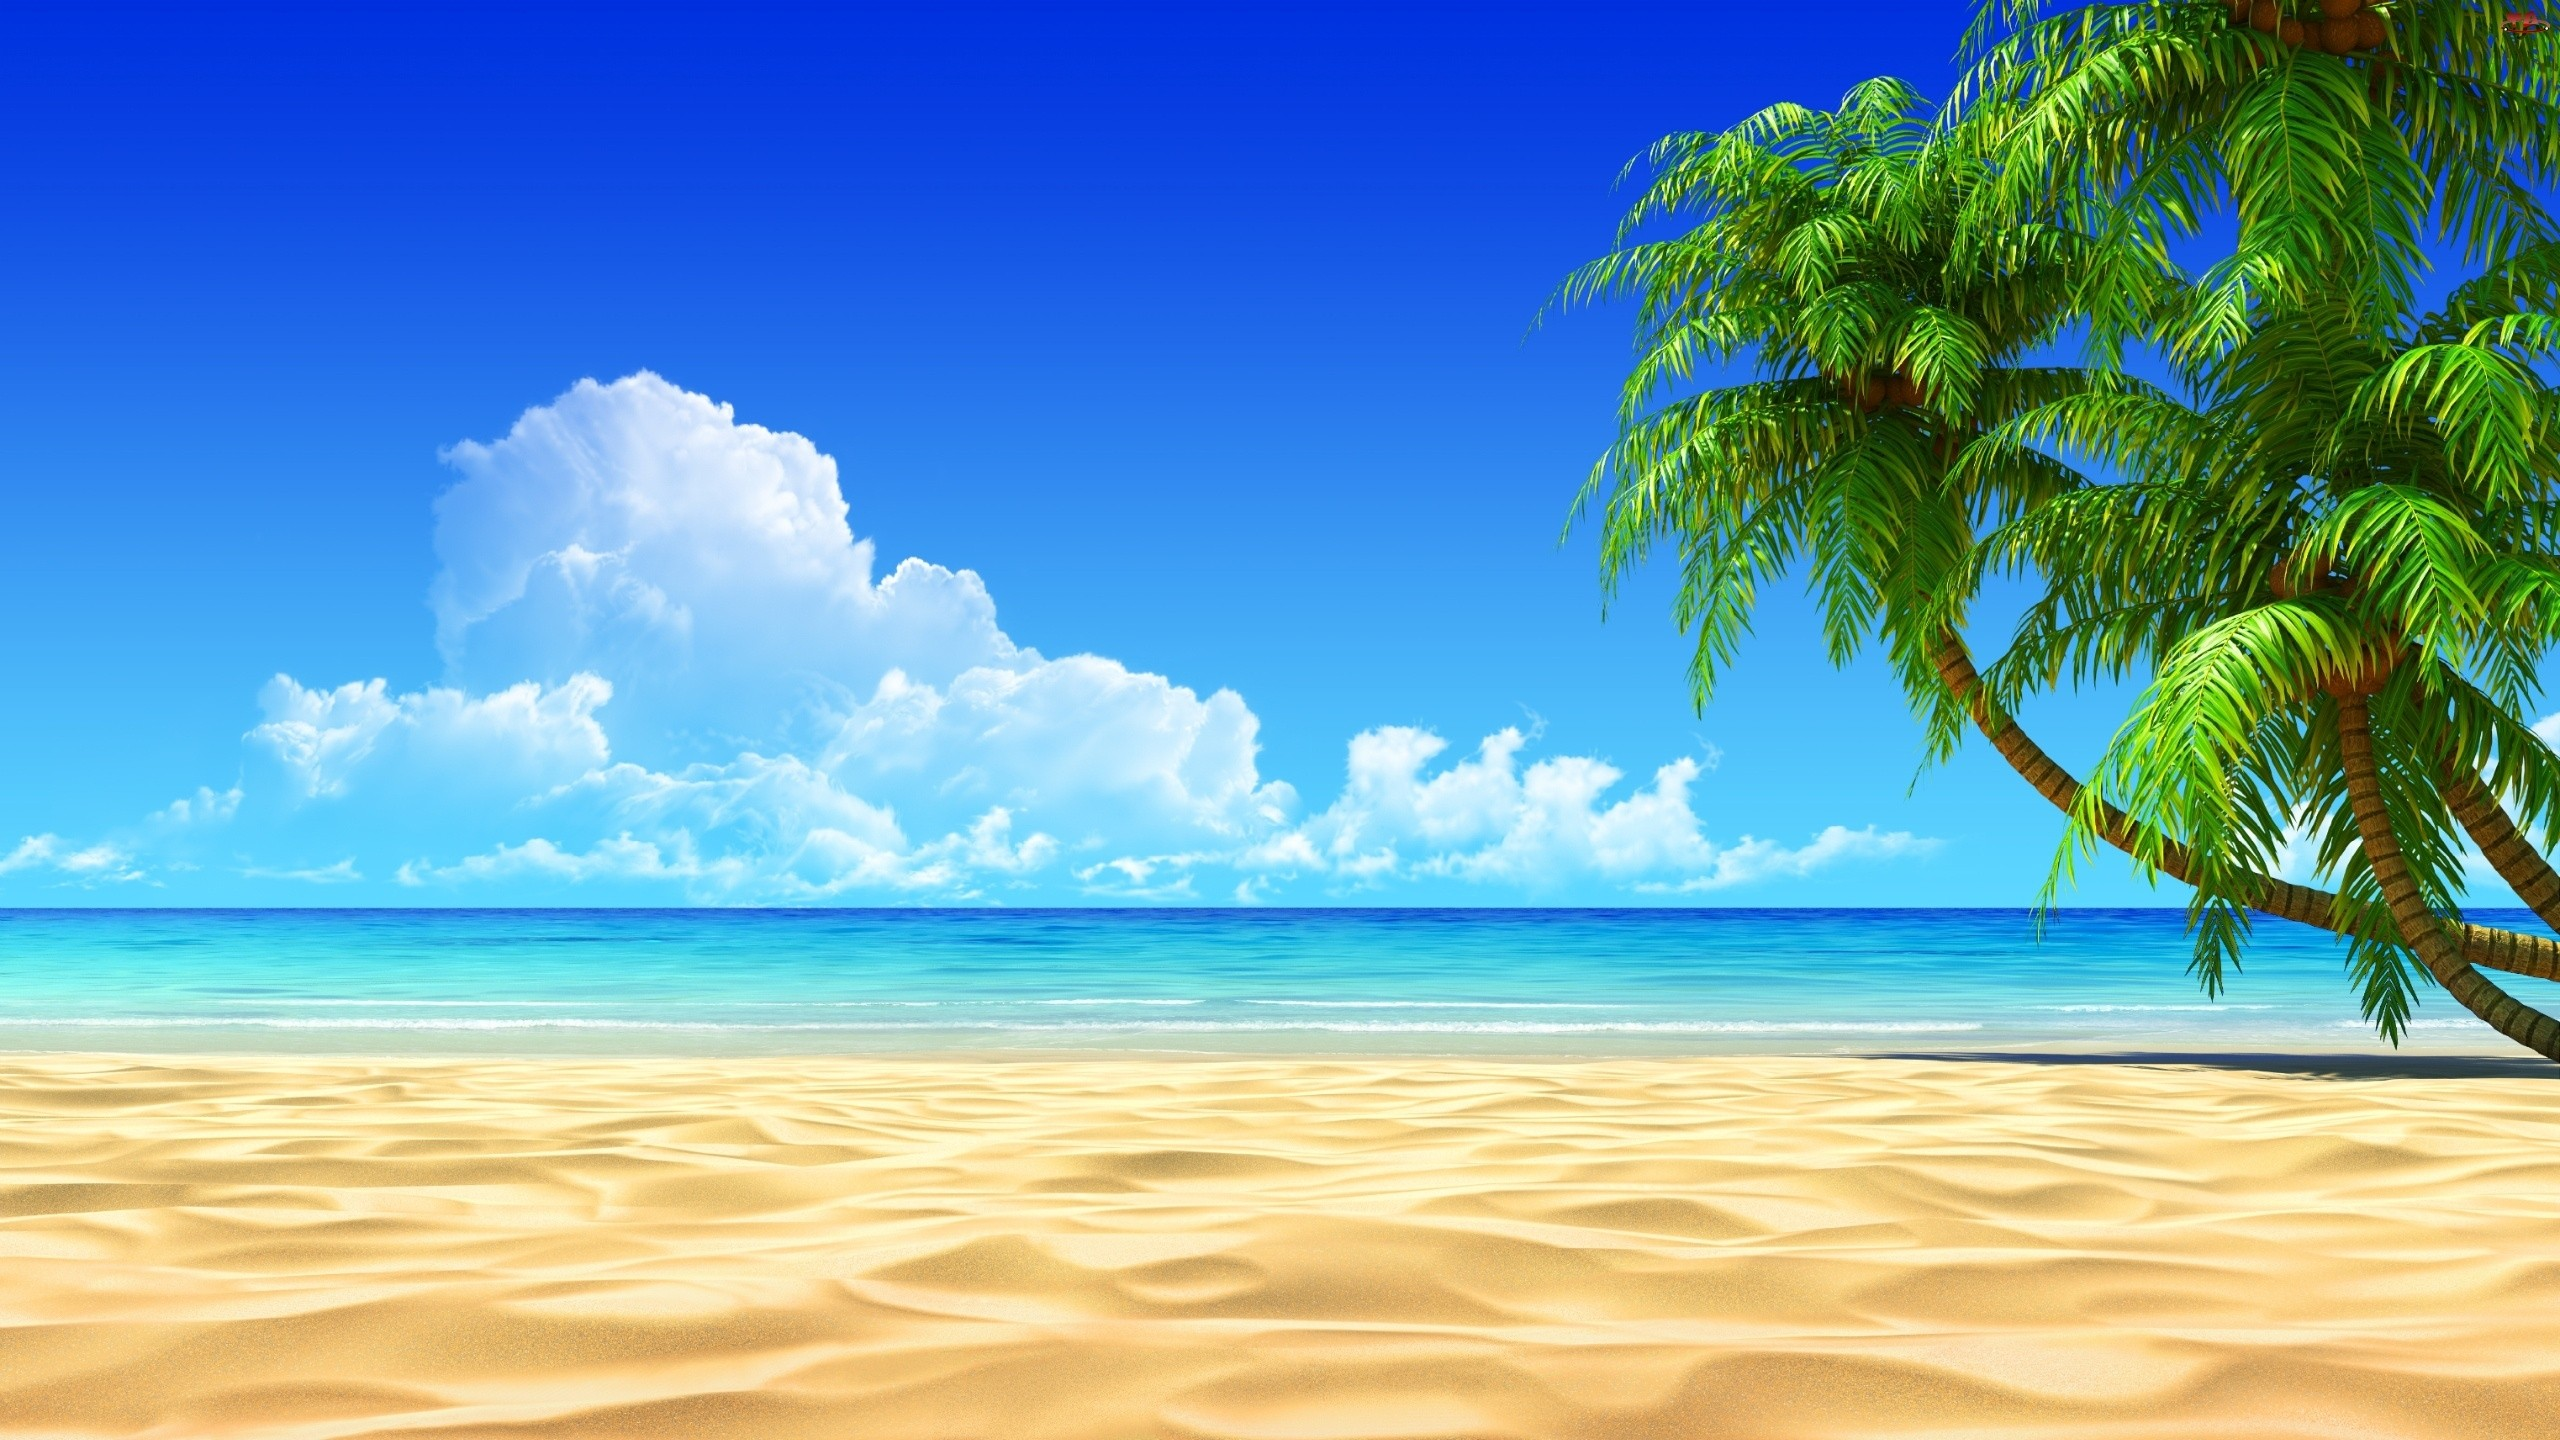 35+ desktop backgrounds beach ·① download free beautiful full hd